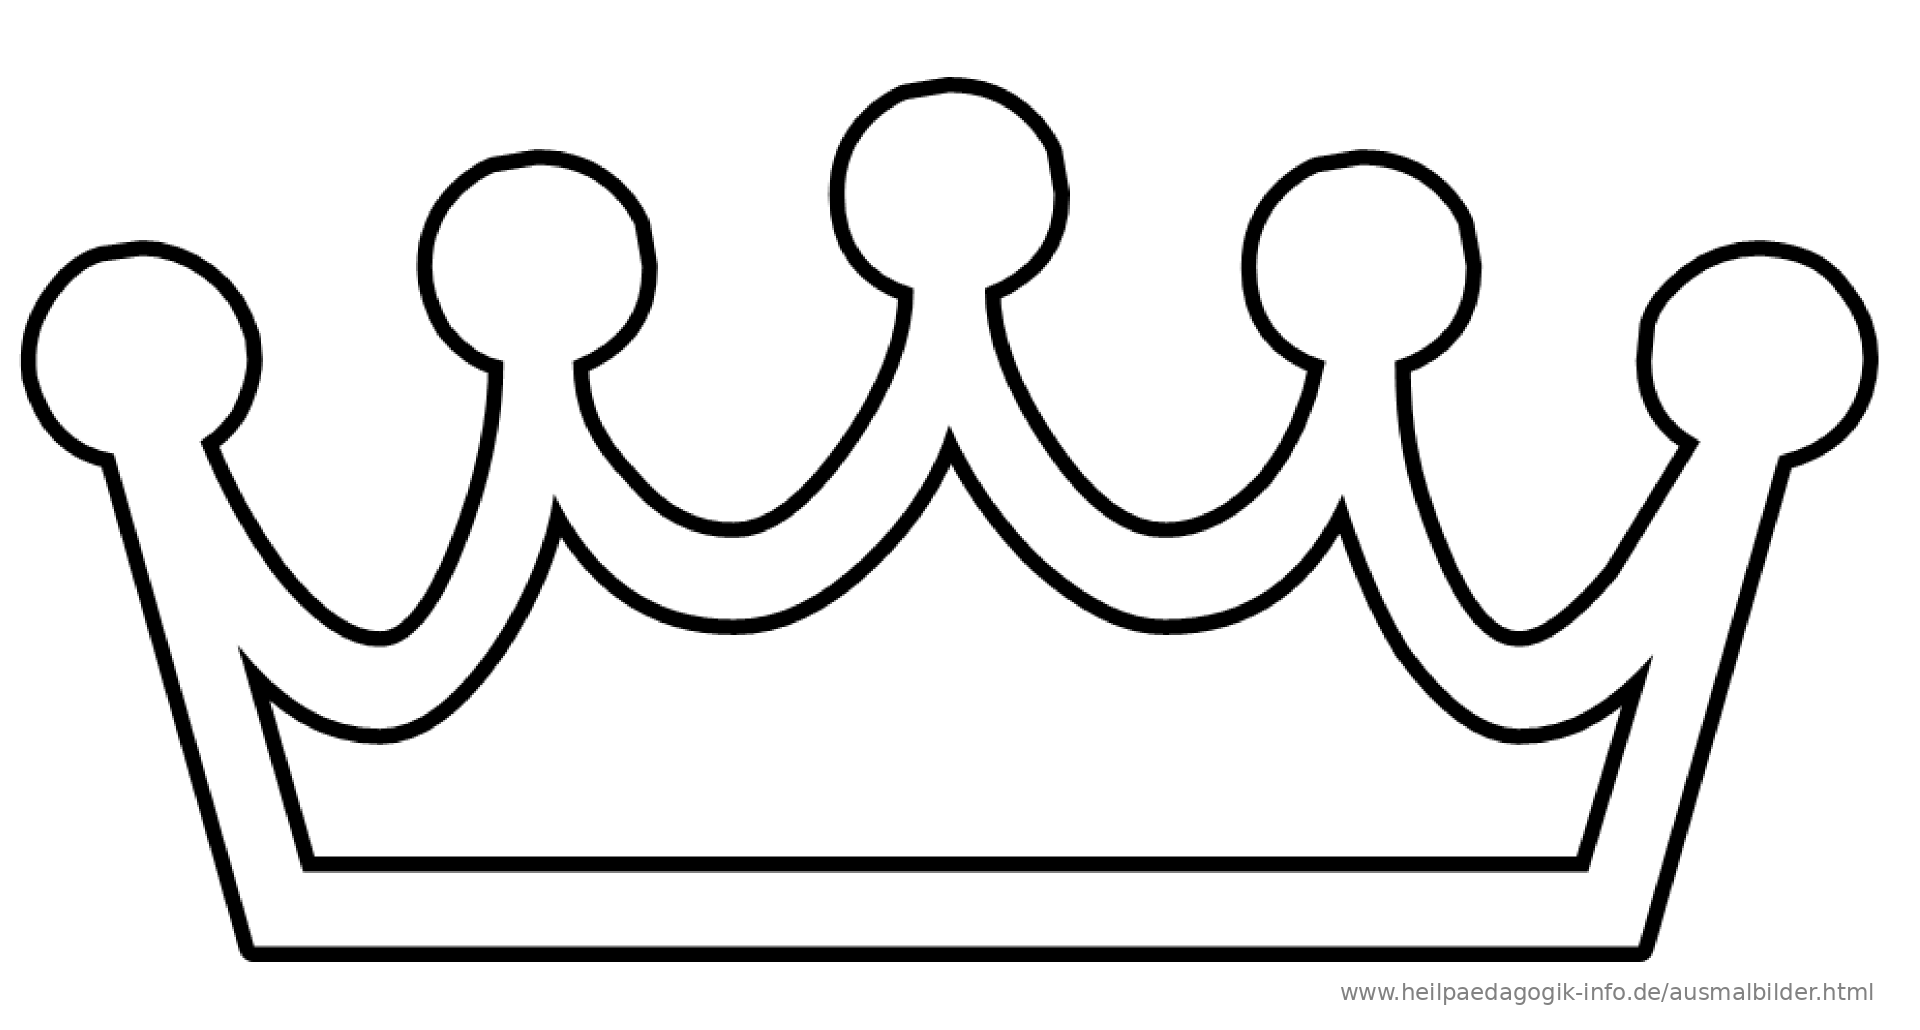 Ausmalbilder prinzessinnen und feen for Cardboard crown template